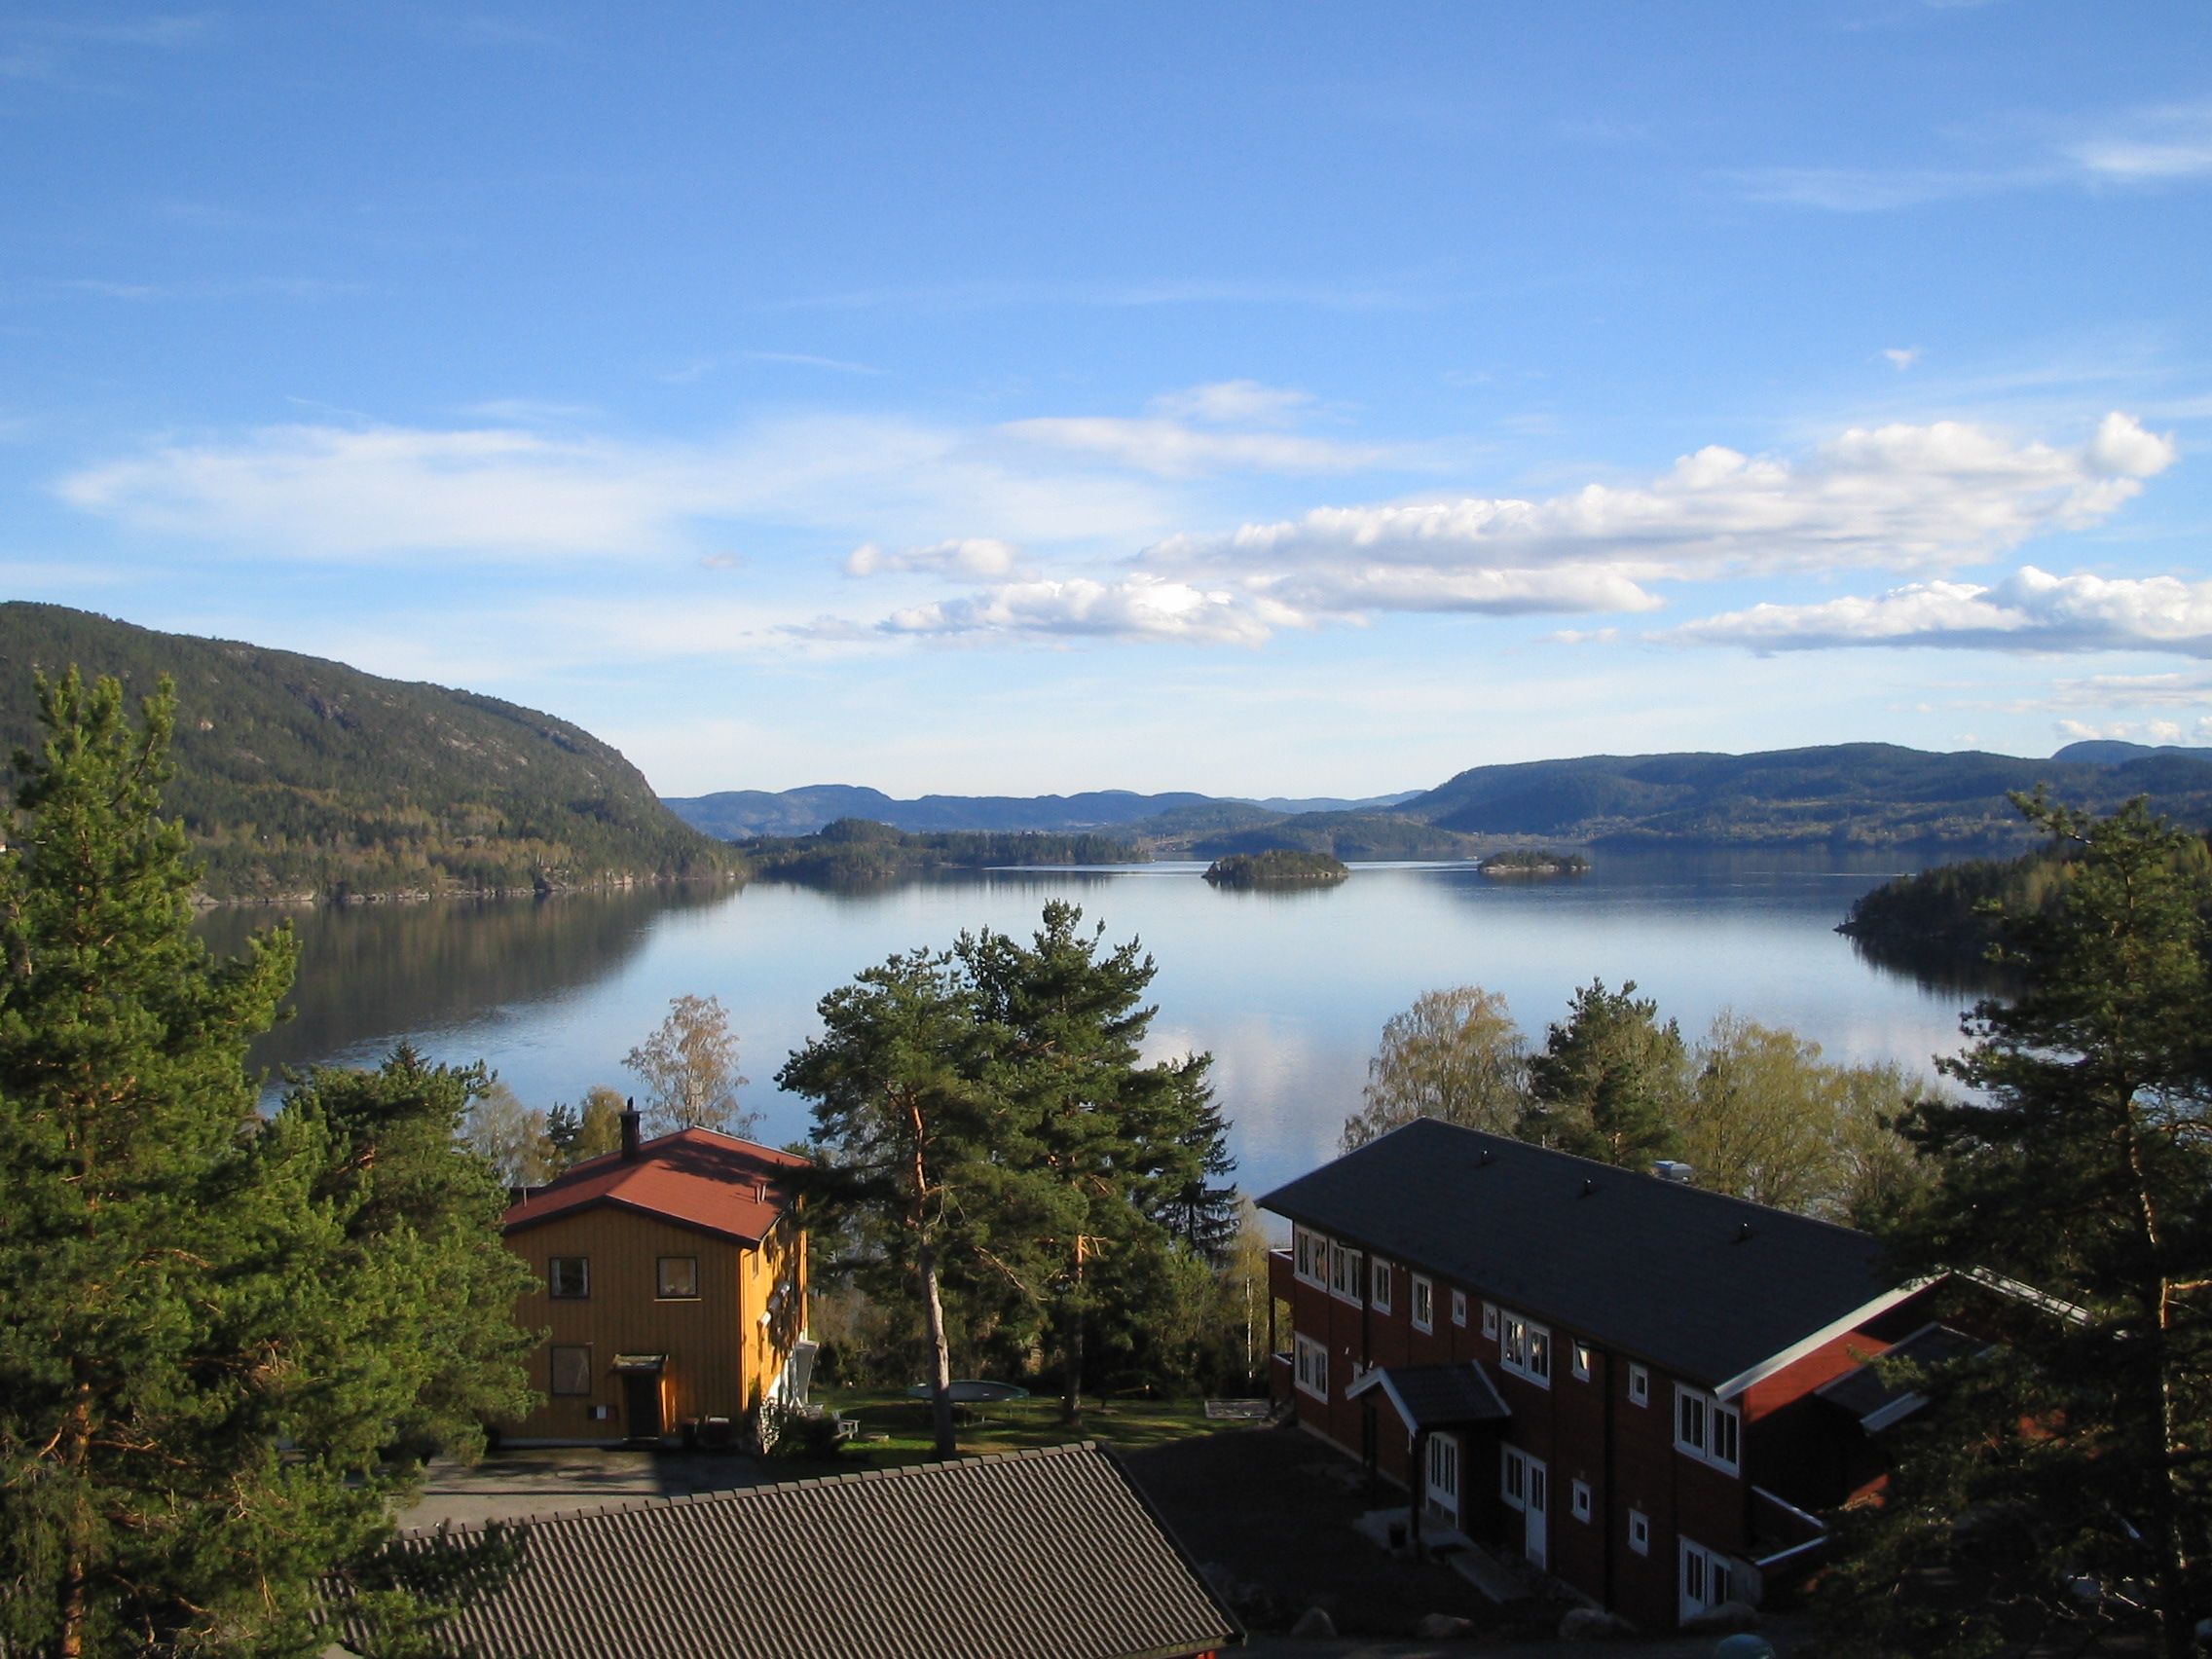 Hostel with a view over lake Norsjø, © Norsjø Ungdomssenter